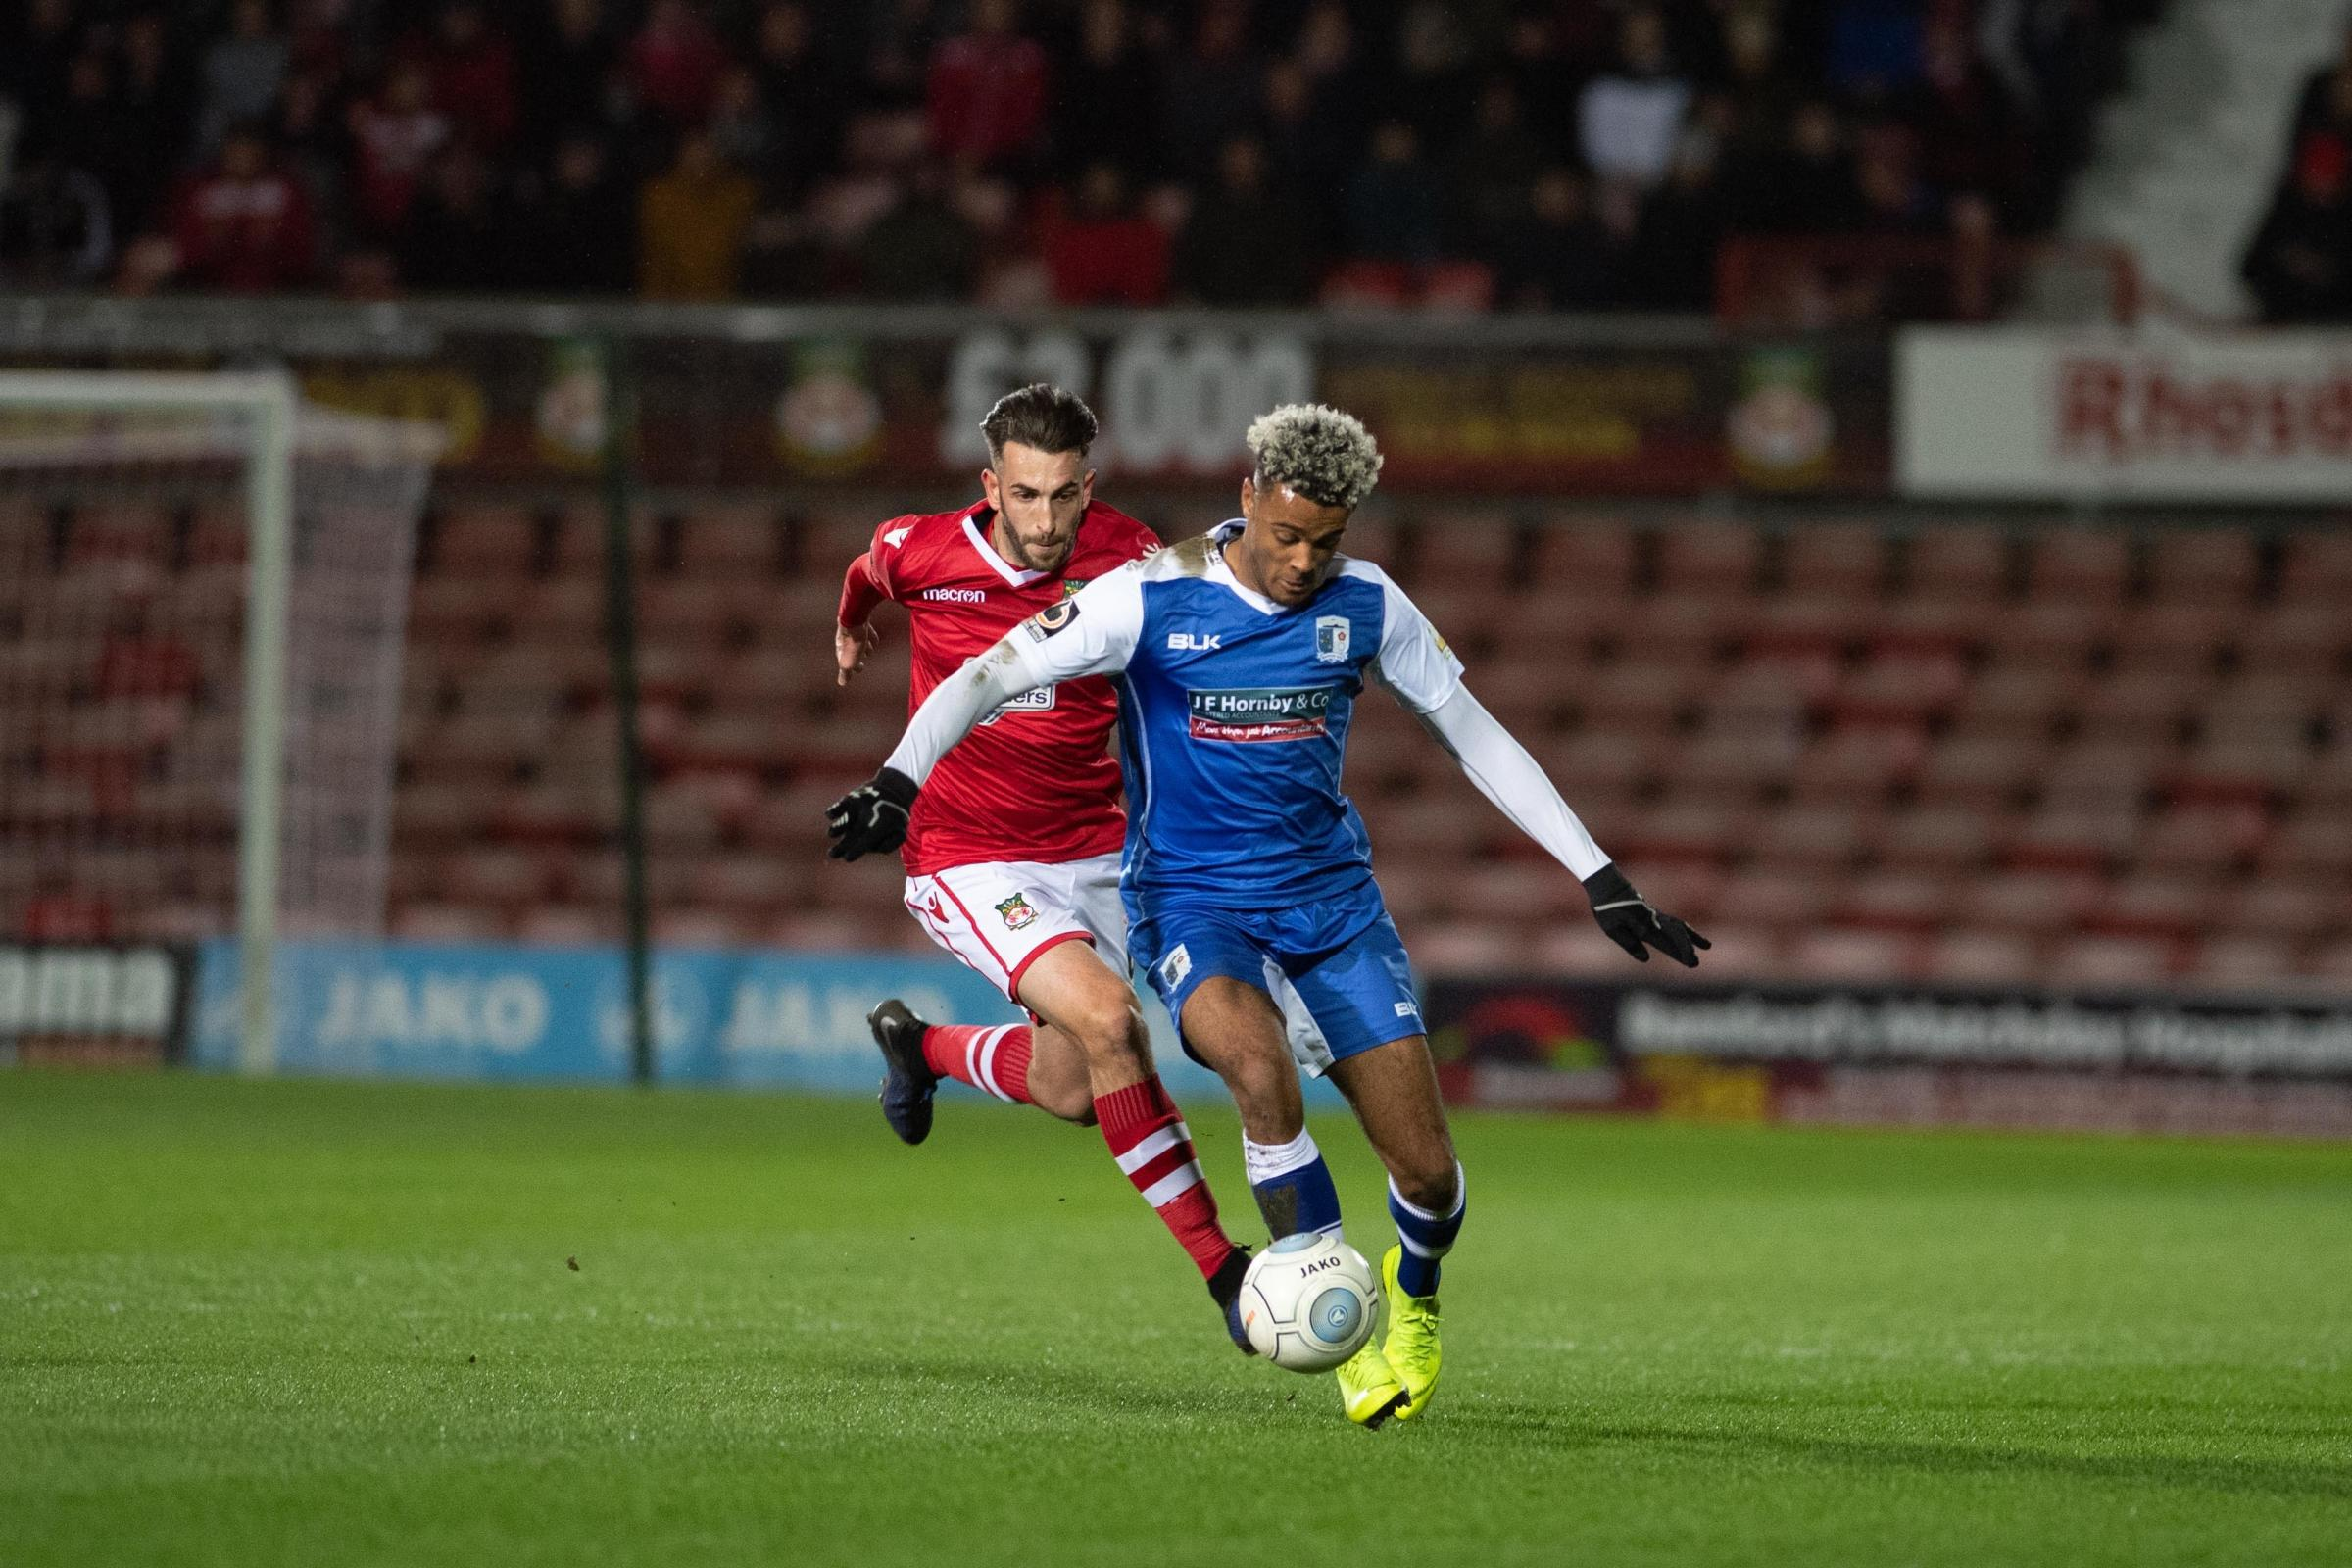 Wrexham AFC defender Kieran Kennedy is looking to make the most of his chance